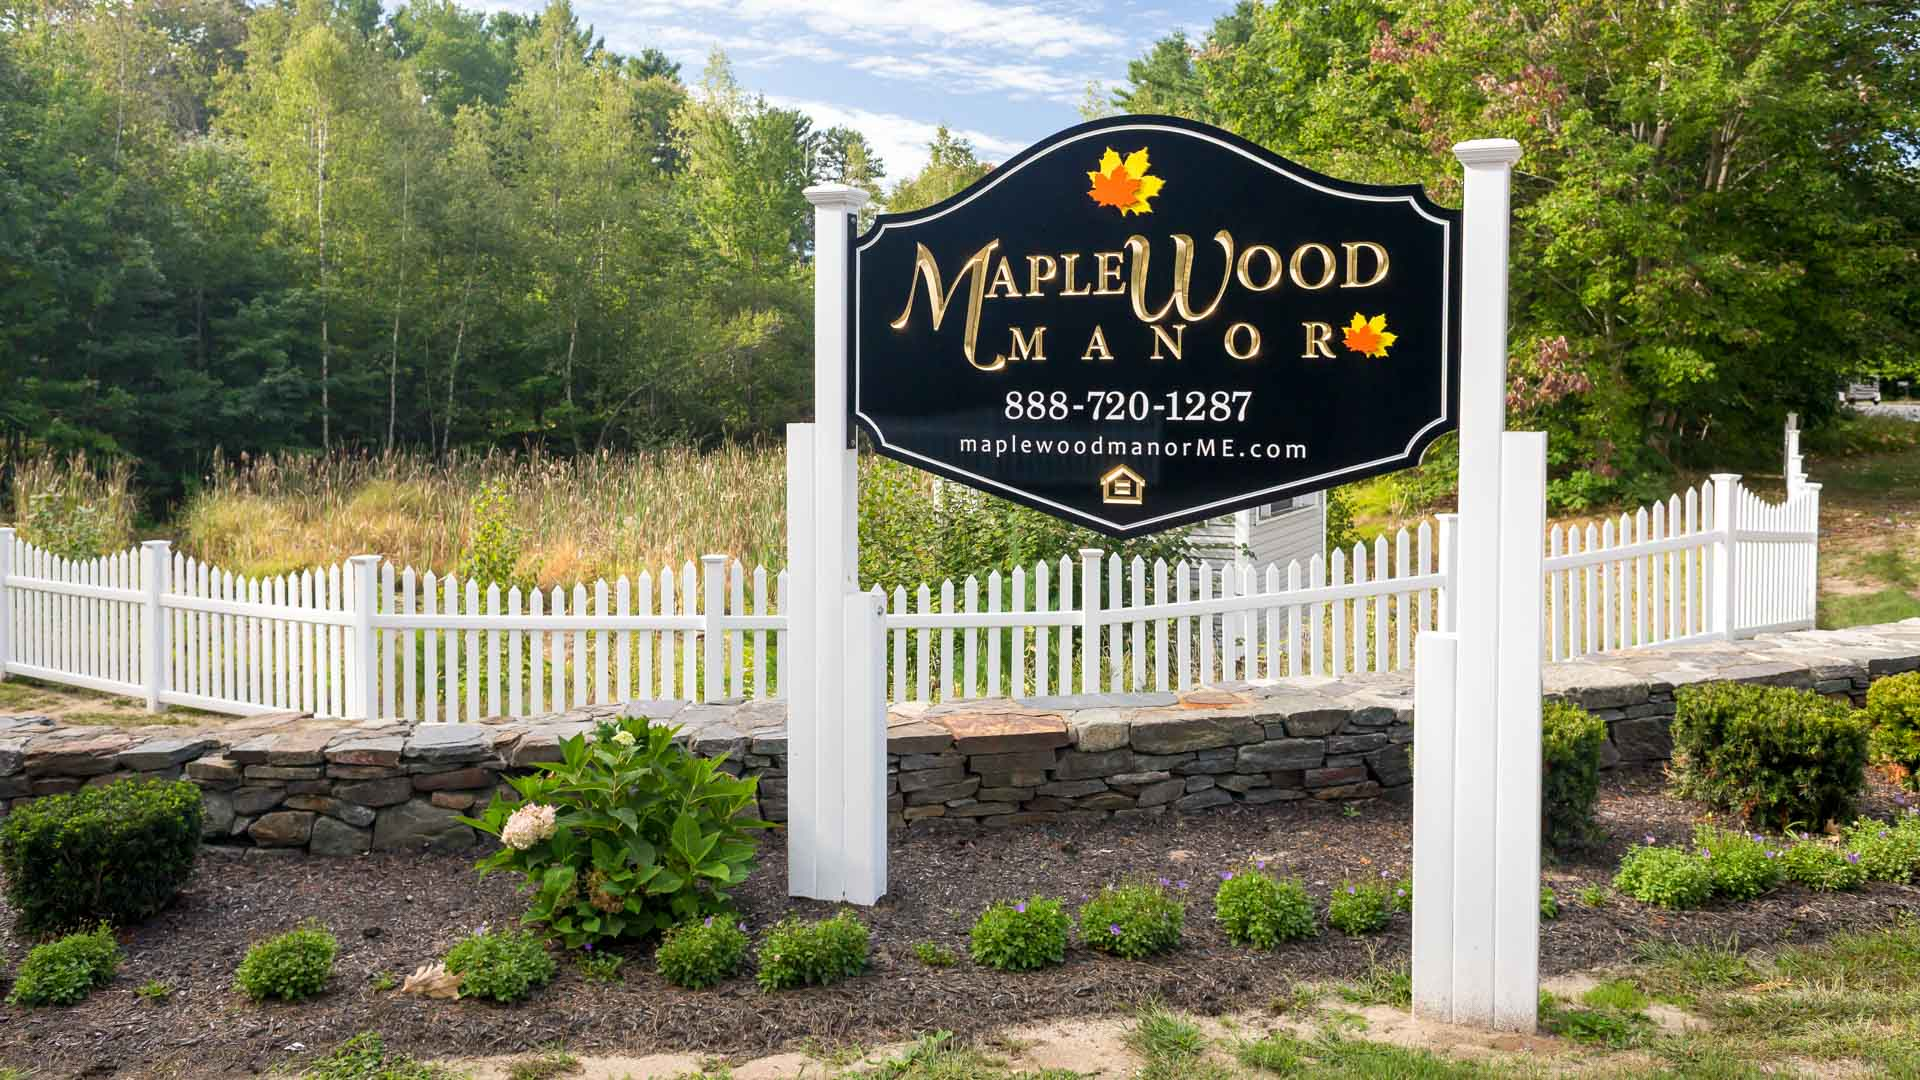 Maplewood Manor Manufactured Homes Community Entrance Sign in Brunswick, ME